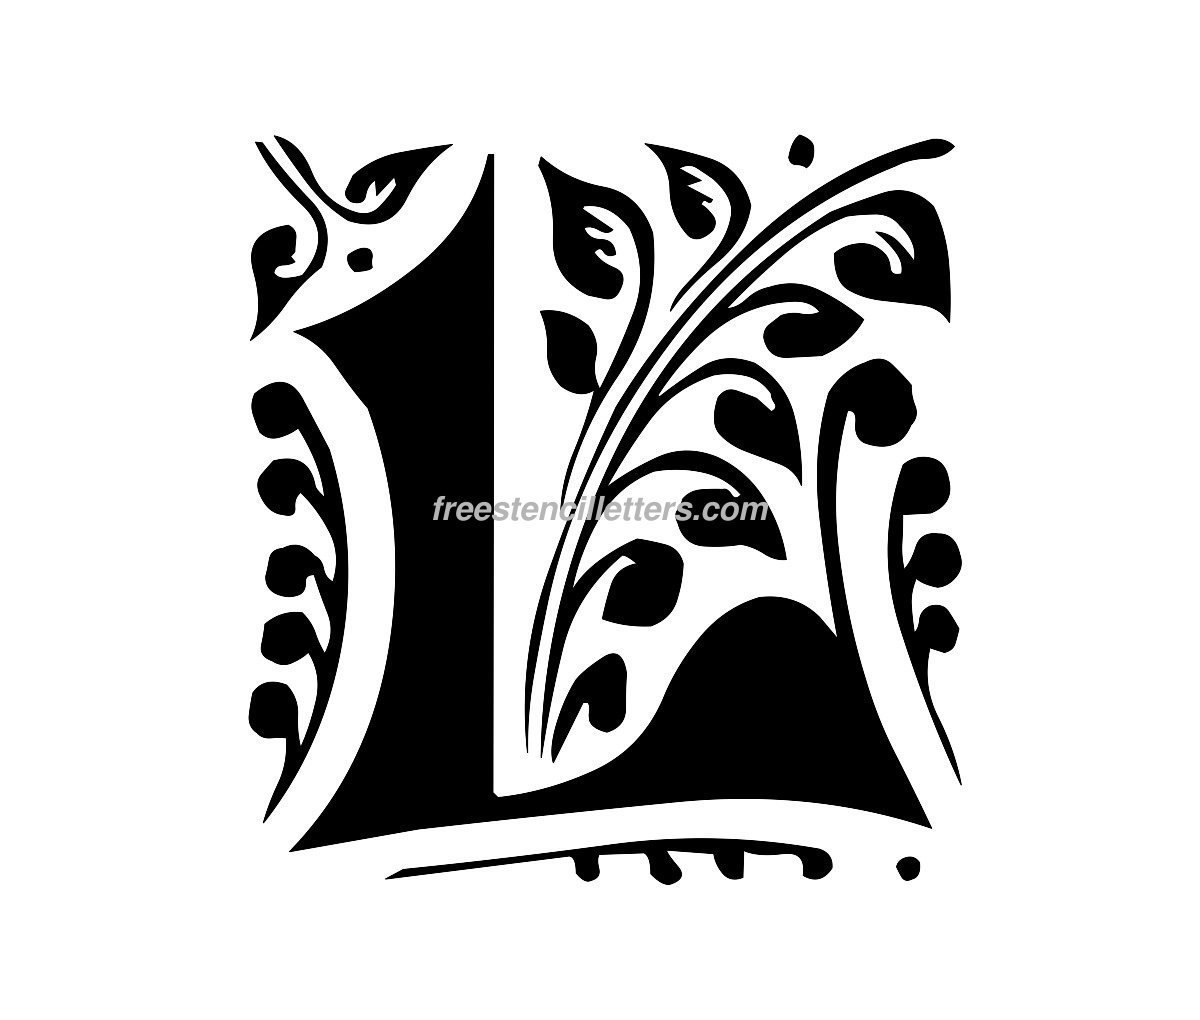 graphic regarding Printable Celtic Stencils called Print L Letter Stencil - Absolutely free Stencil Letters